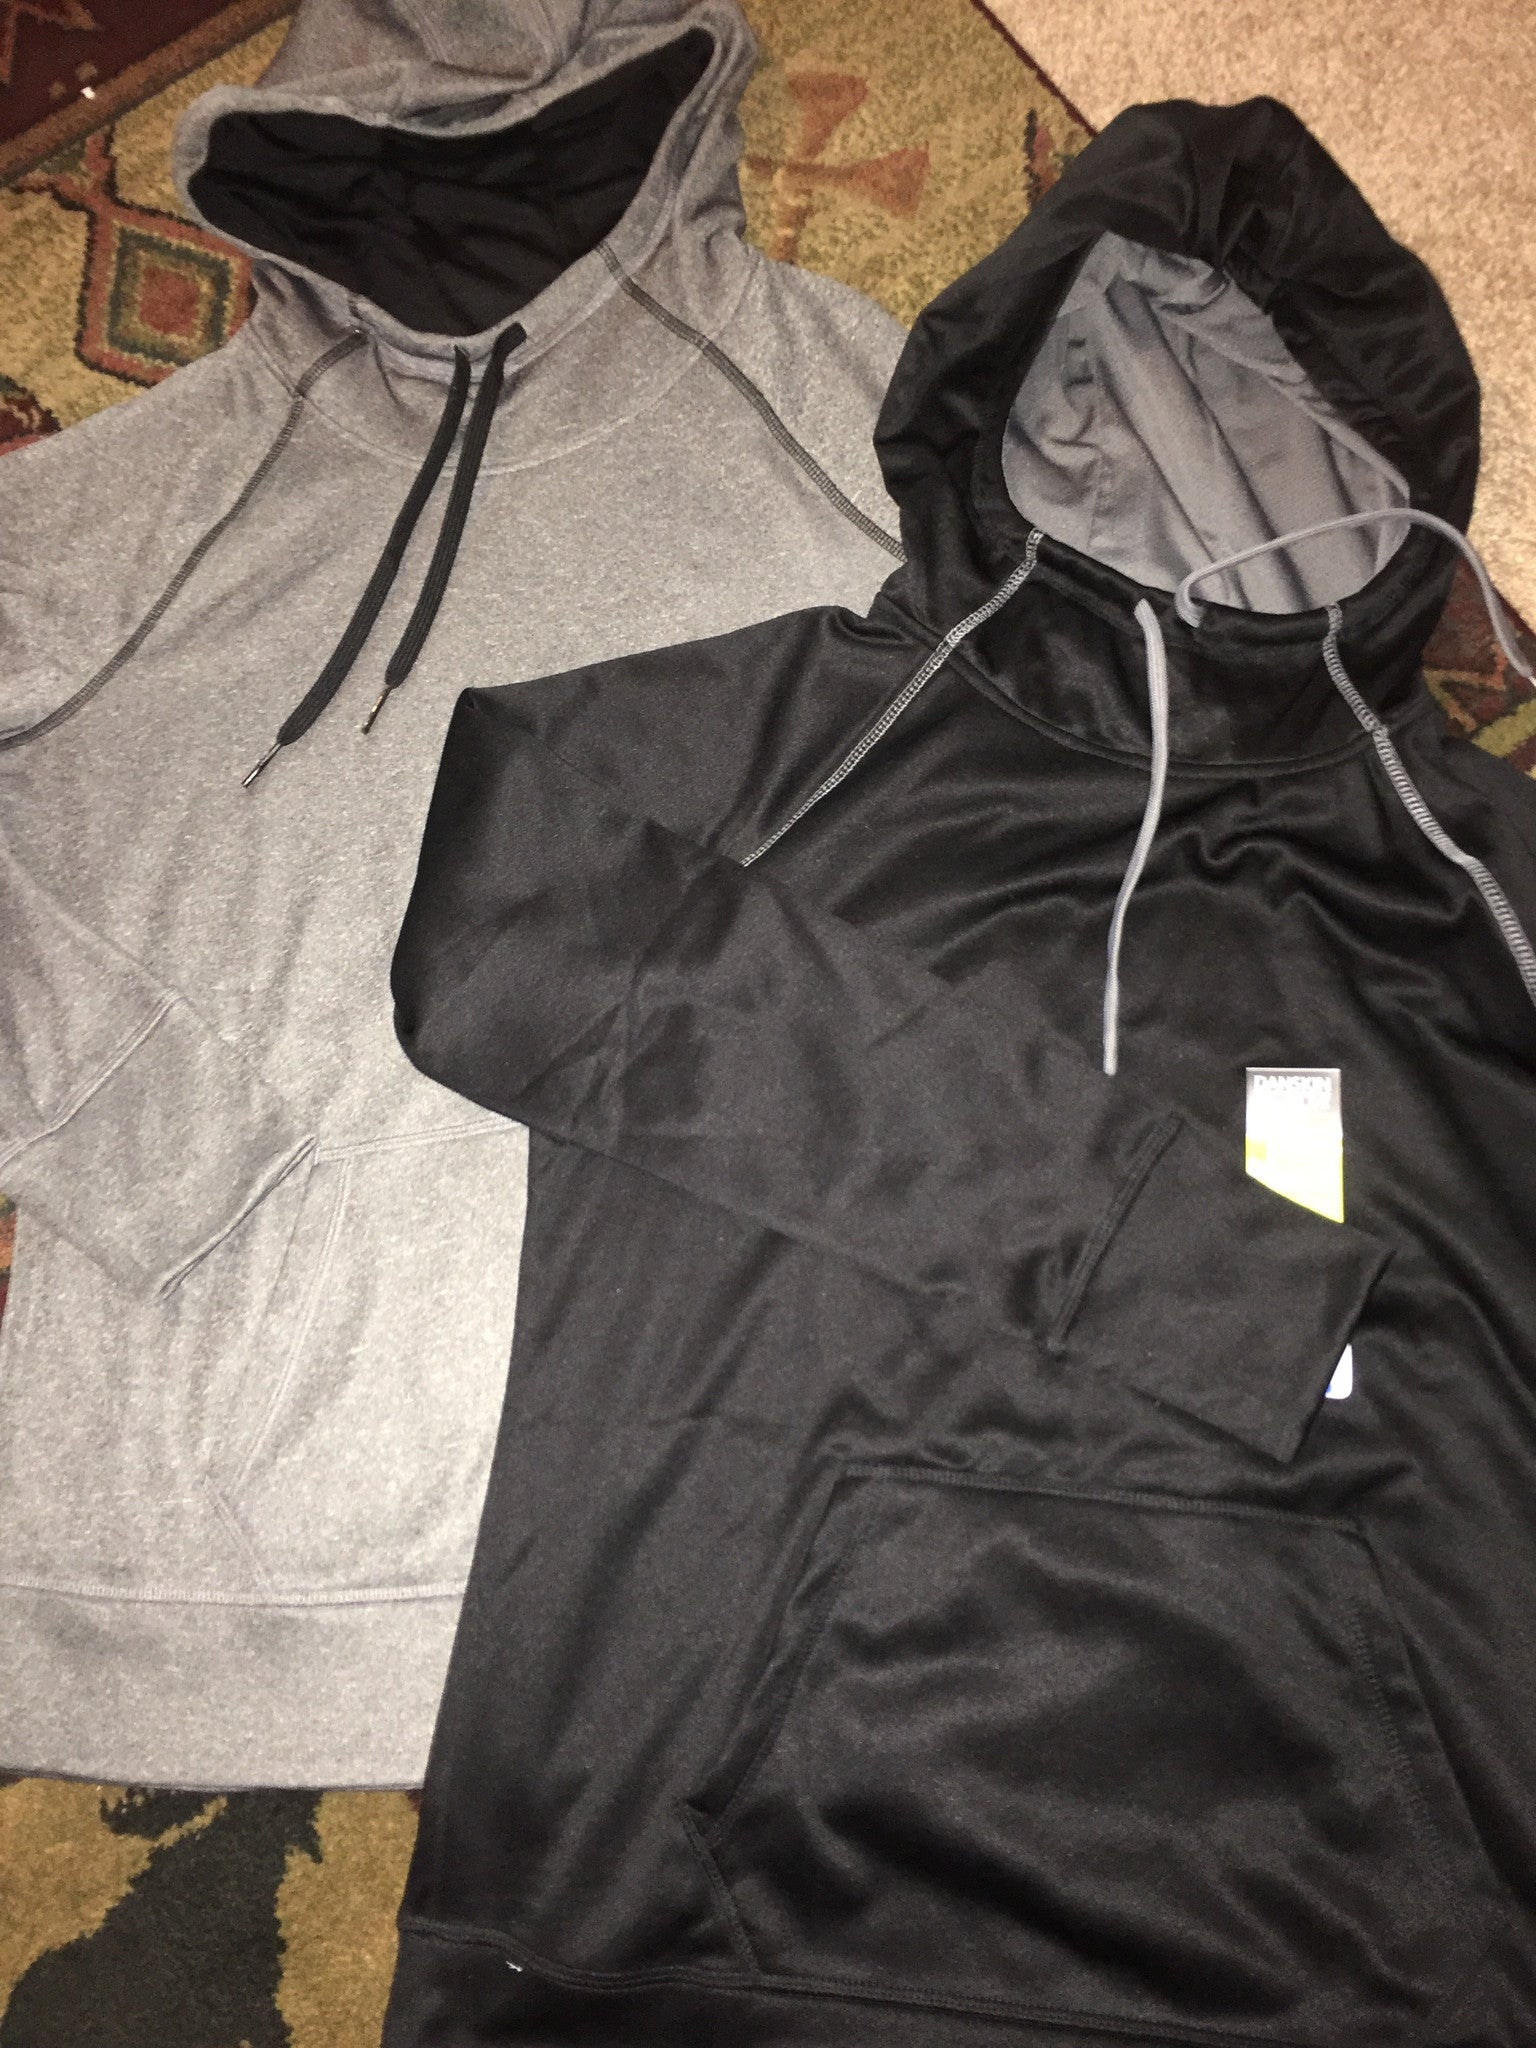 Two toned performance tech fleece hoodies - Customizeable